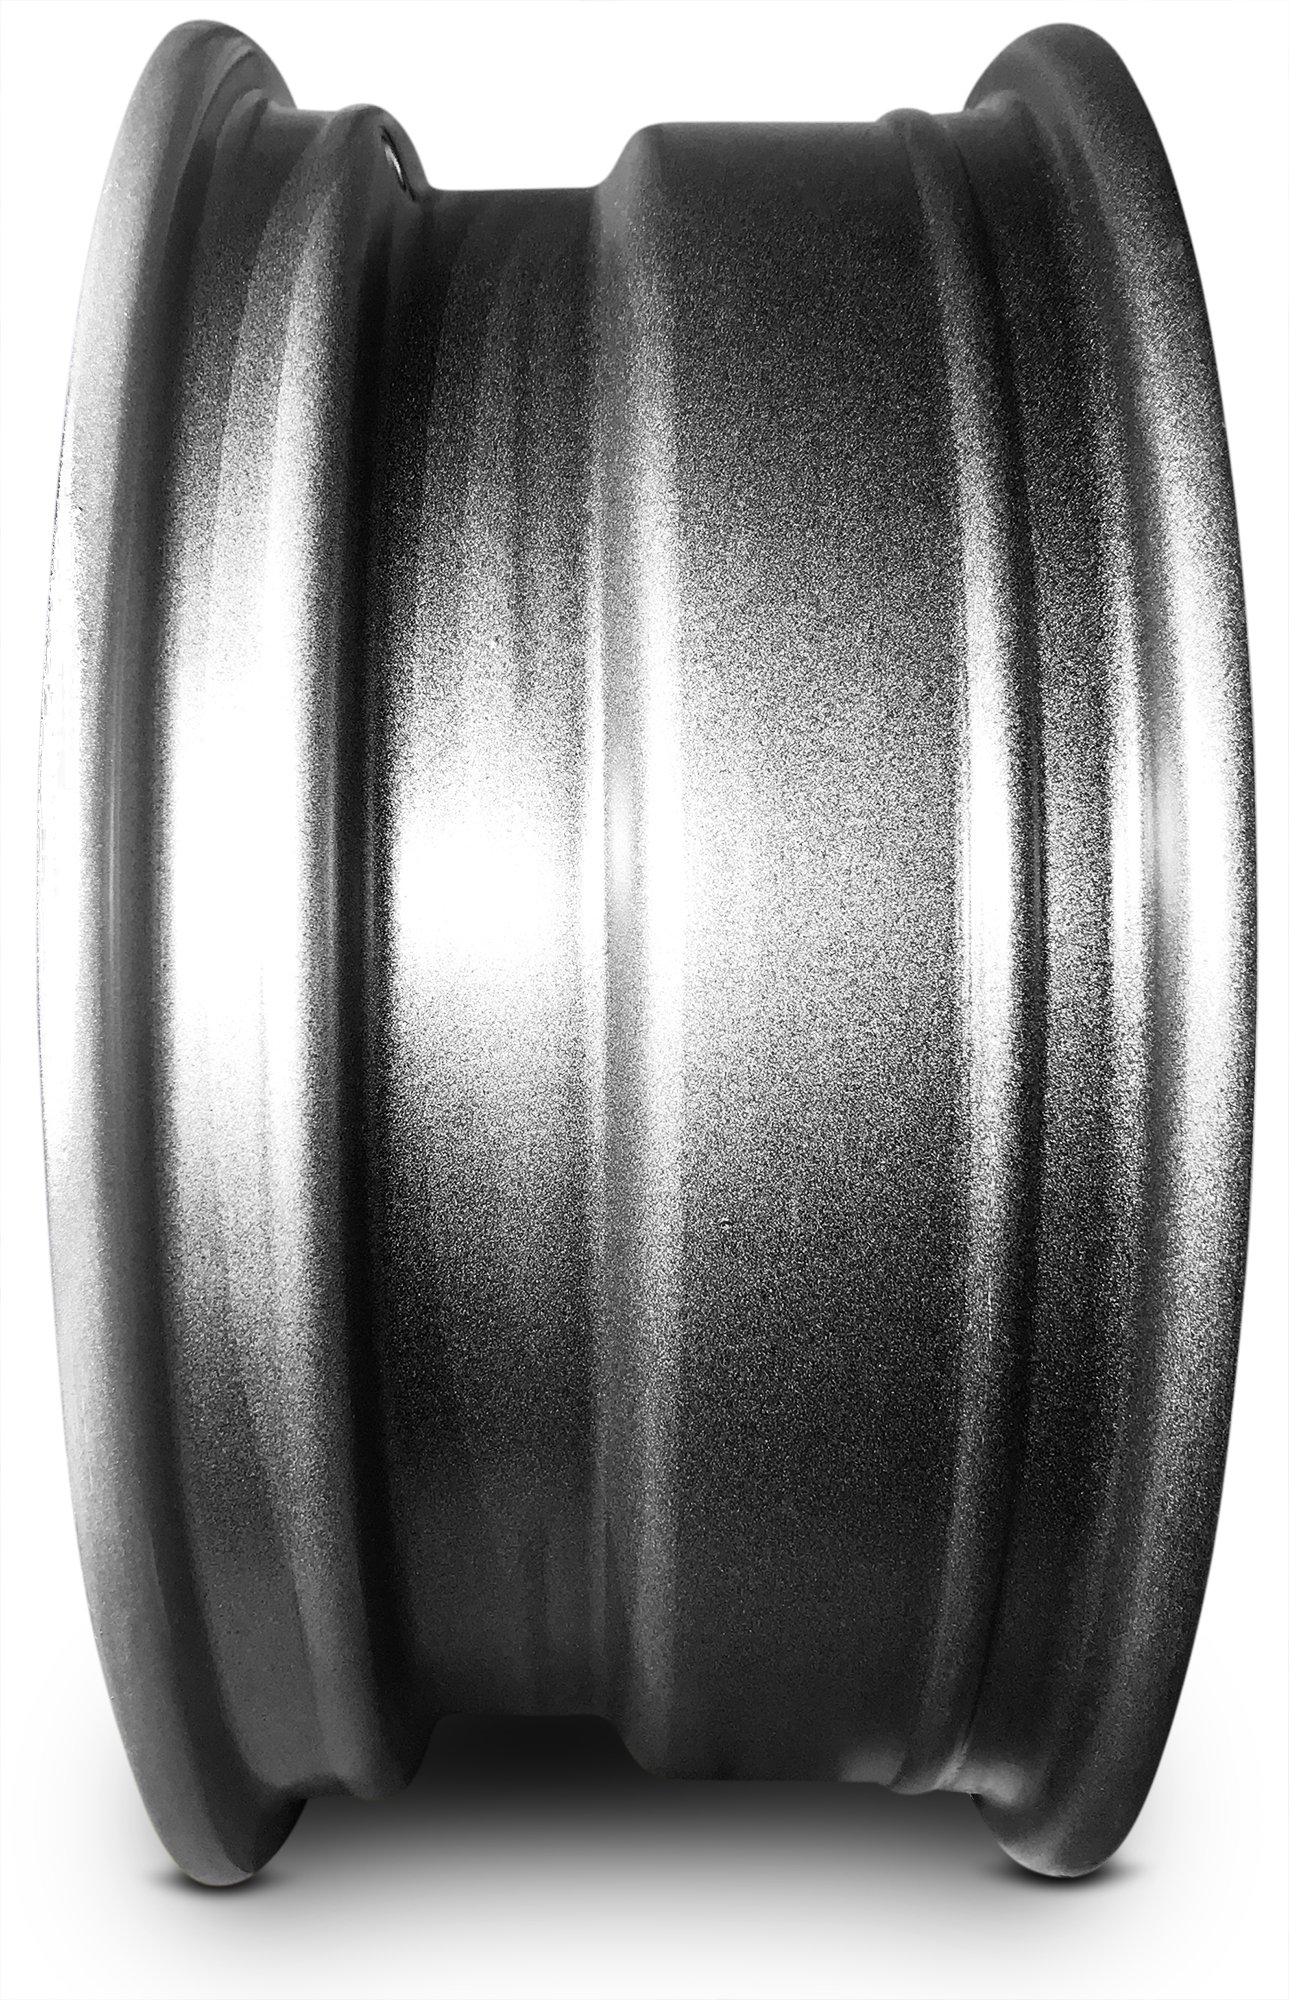 New 16 Inch Jeep Patriot Compass 5 Lug Silver Replacement Steel Wheel Rim 16x6.5 Inch 5 Lug 67.1mm Center Bore 40mm Offset WAA by Road Ready Wheels (Image #6)